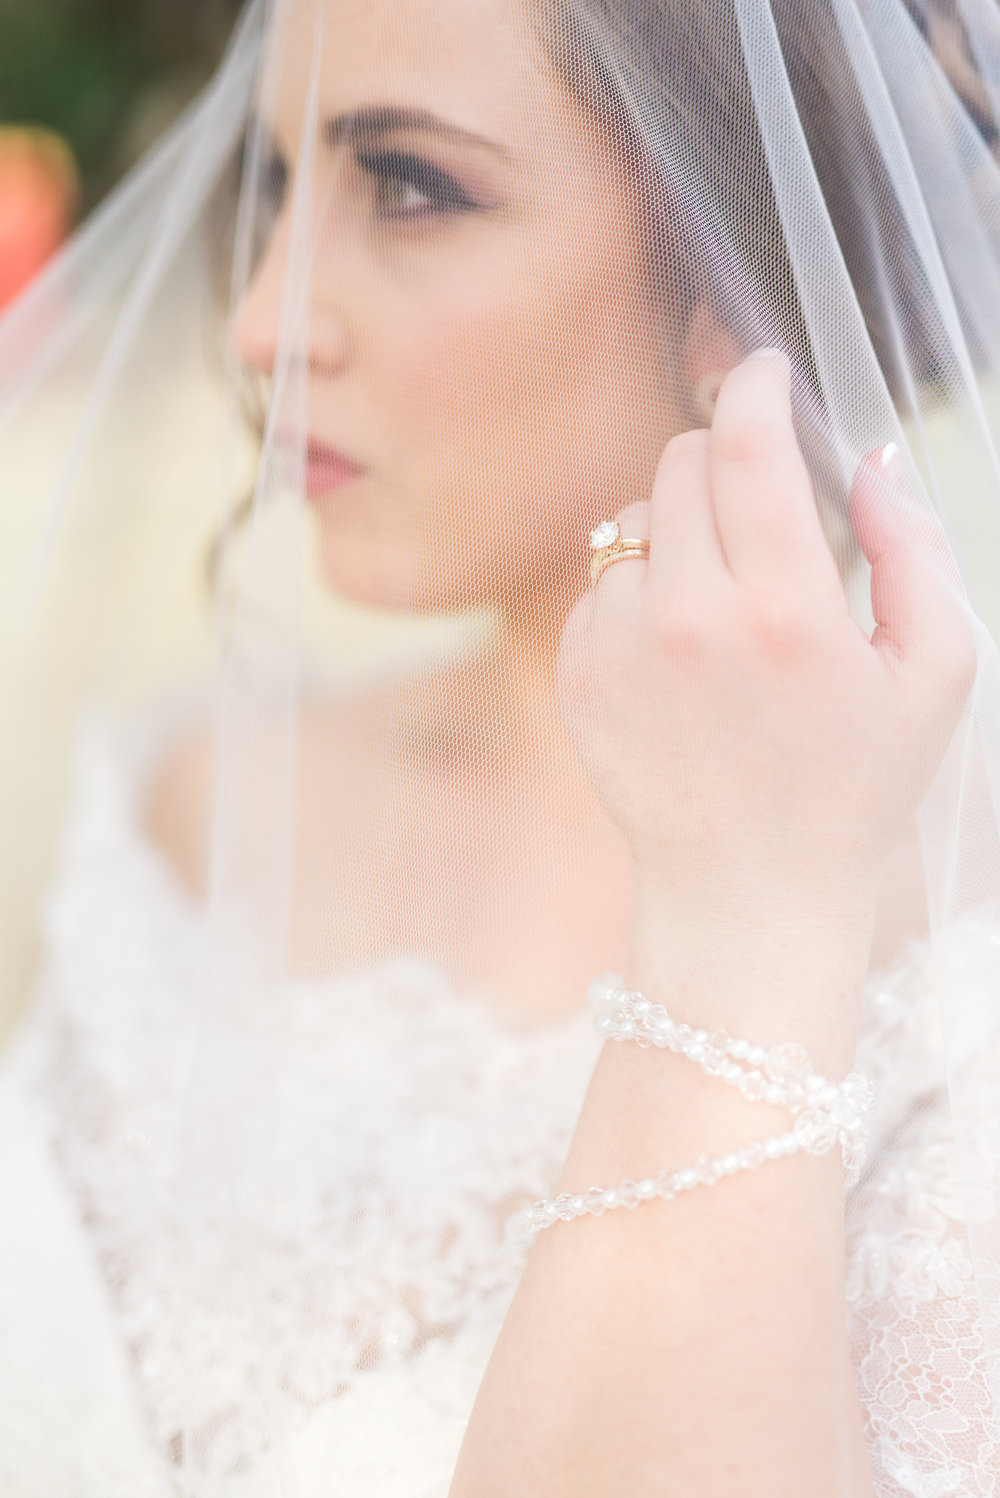 Gold Collection - $5150 - 8 hours photo + video coverageApproximately 700 edited, high-resolution imagesOur 3-4 minute Highlight Film with licensed musicWedding images + film/s supplied on our custom USBOnline gallery to share with friends and family